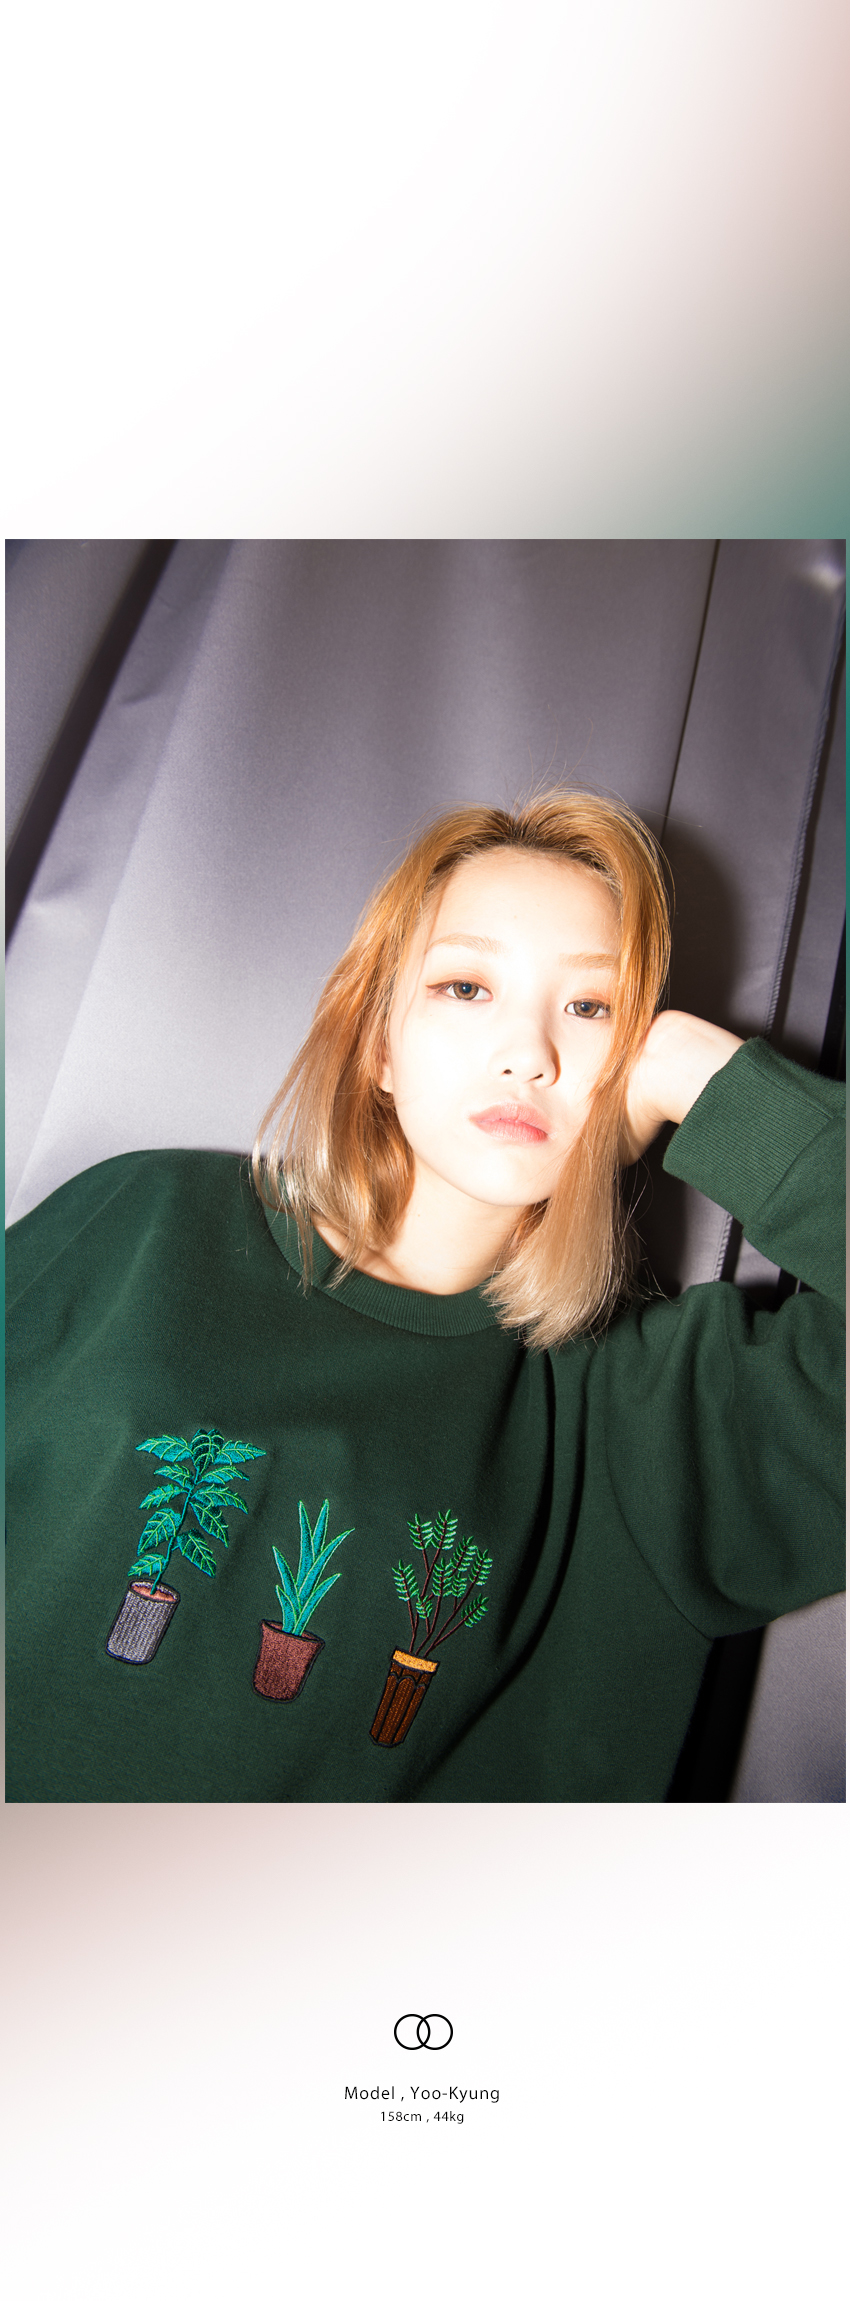 Embroidered Potted Plant Detail Sweatshirt|